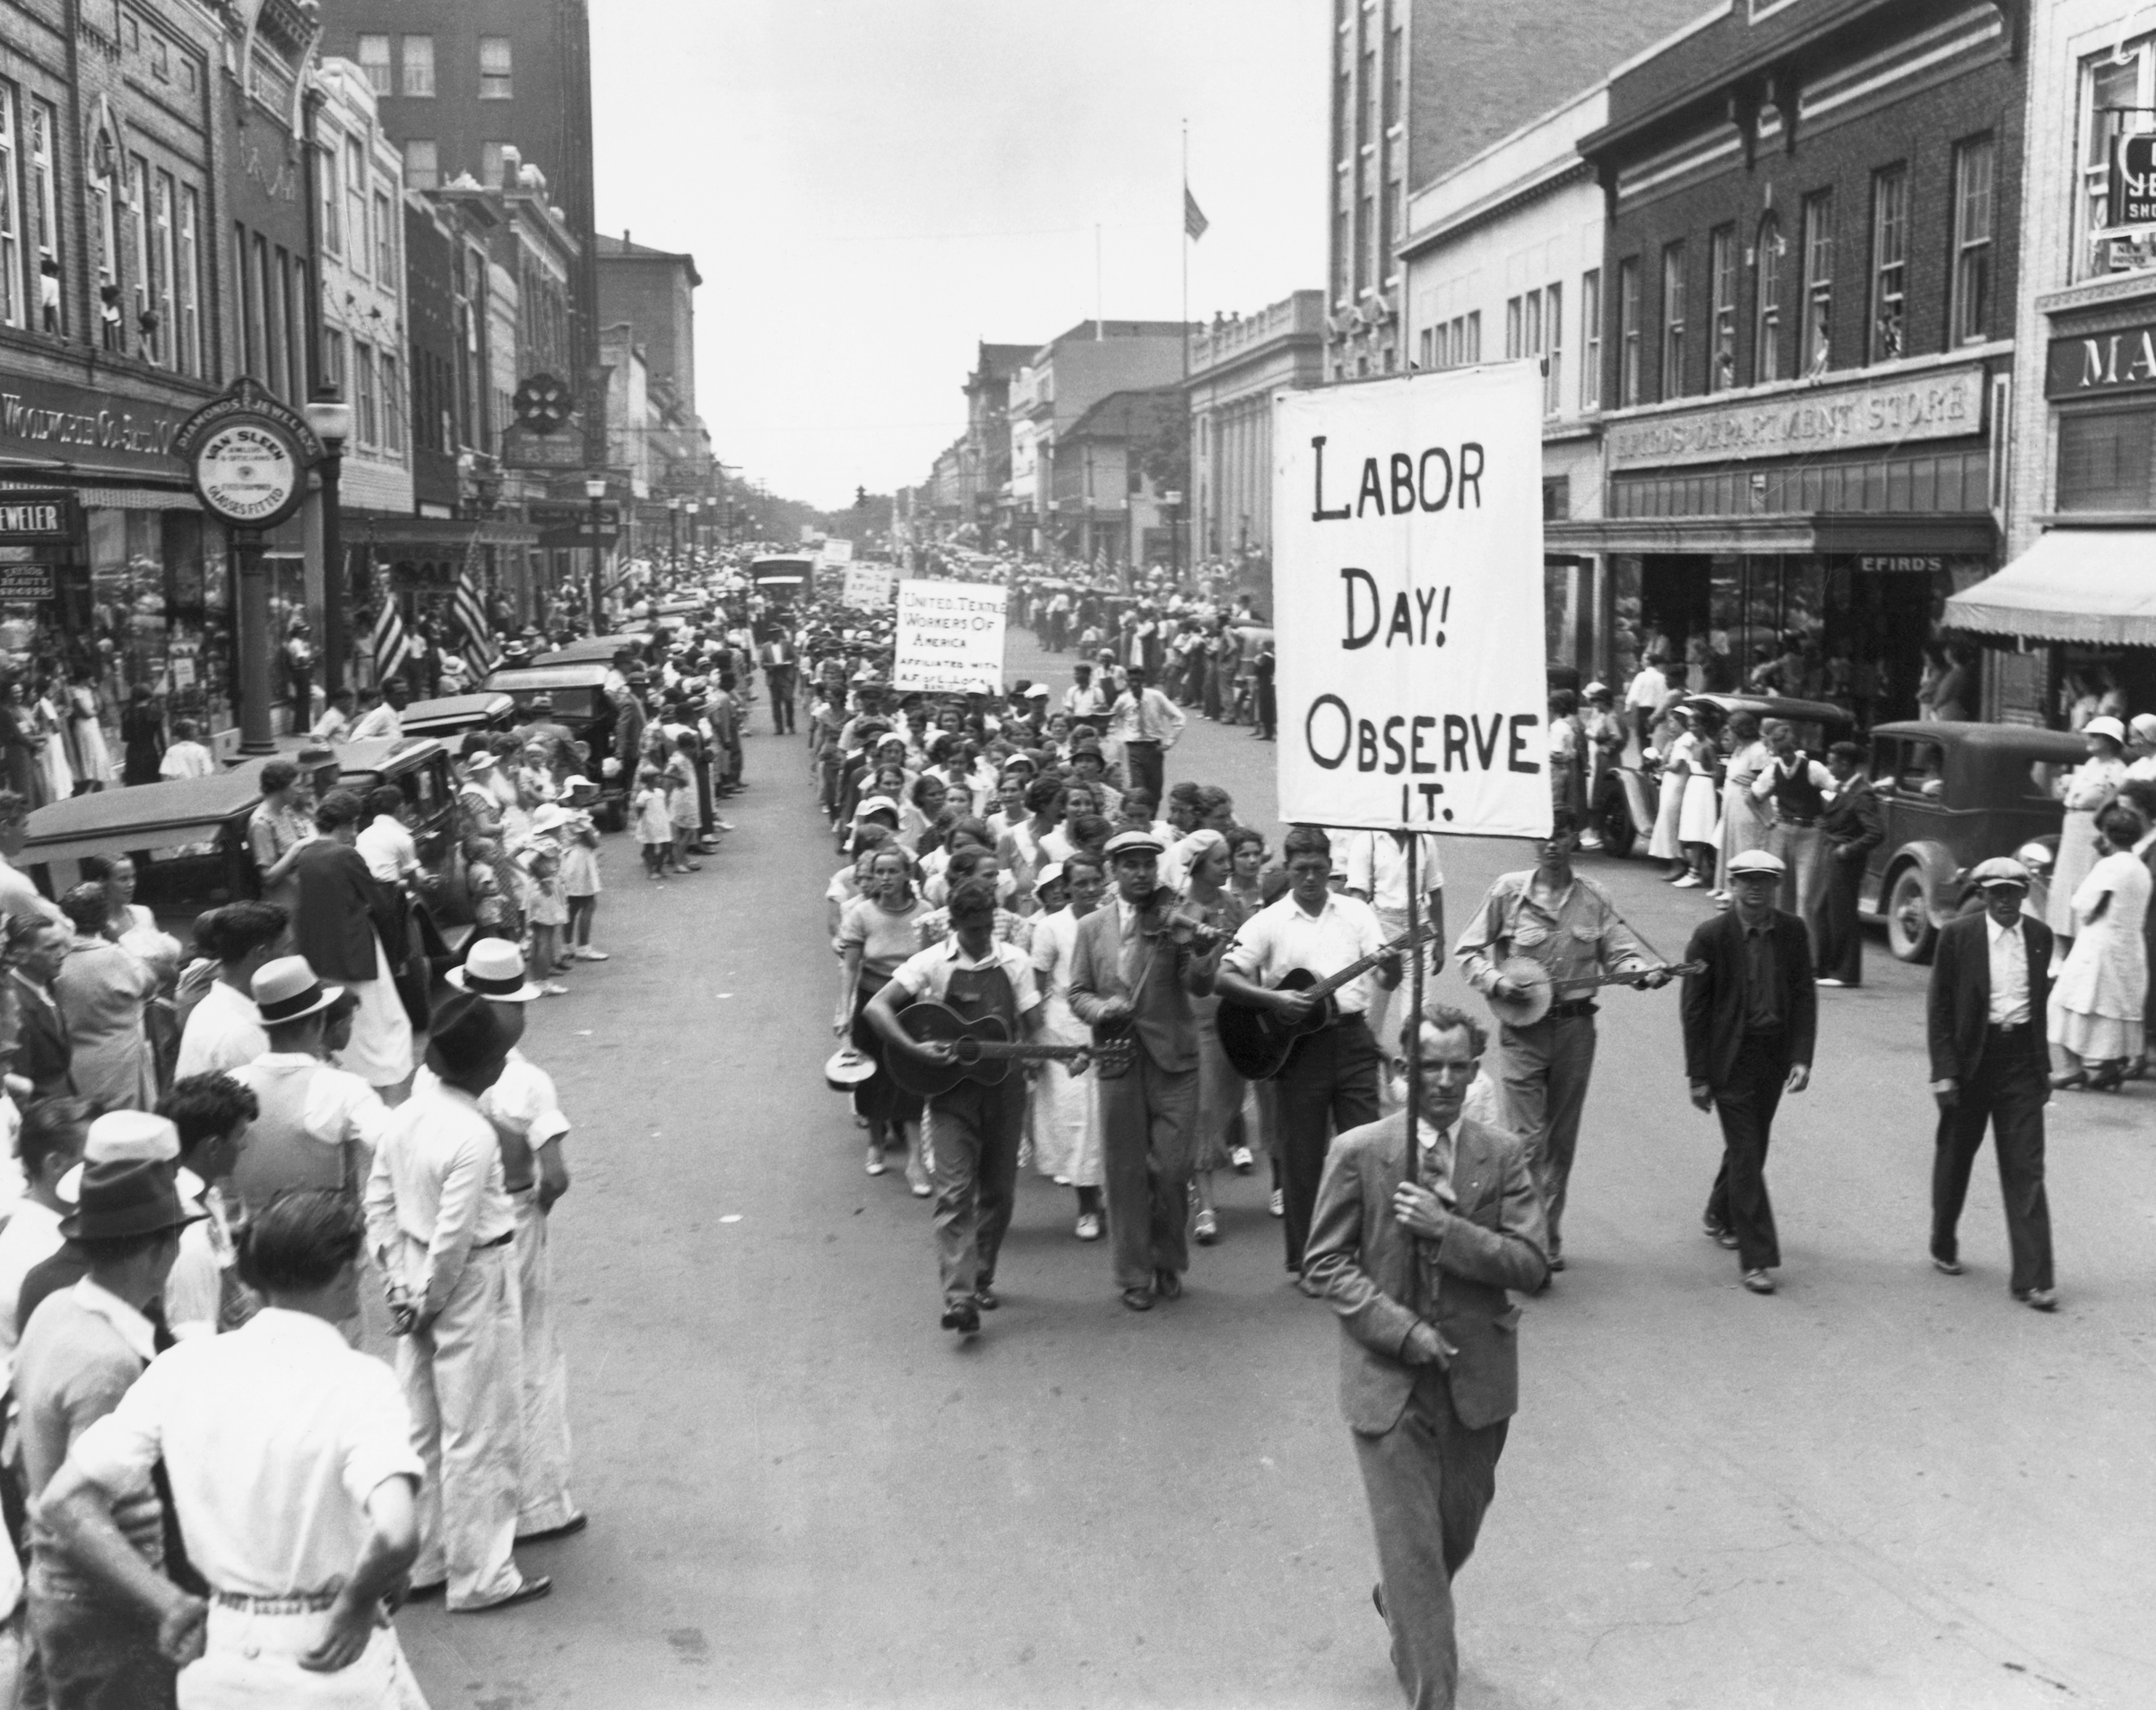 A 1934 Labor Day parade in Gastonia, N.C.